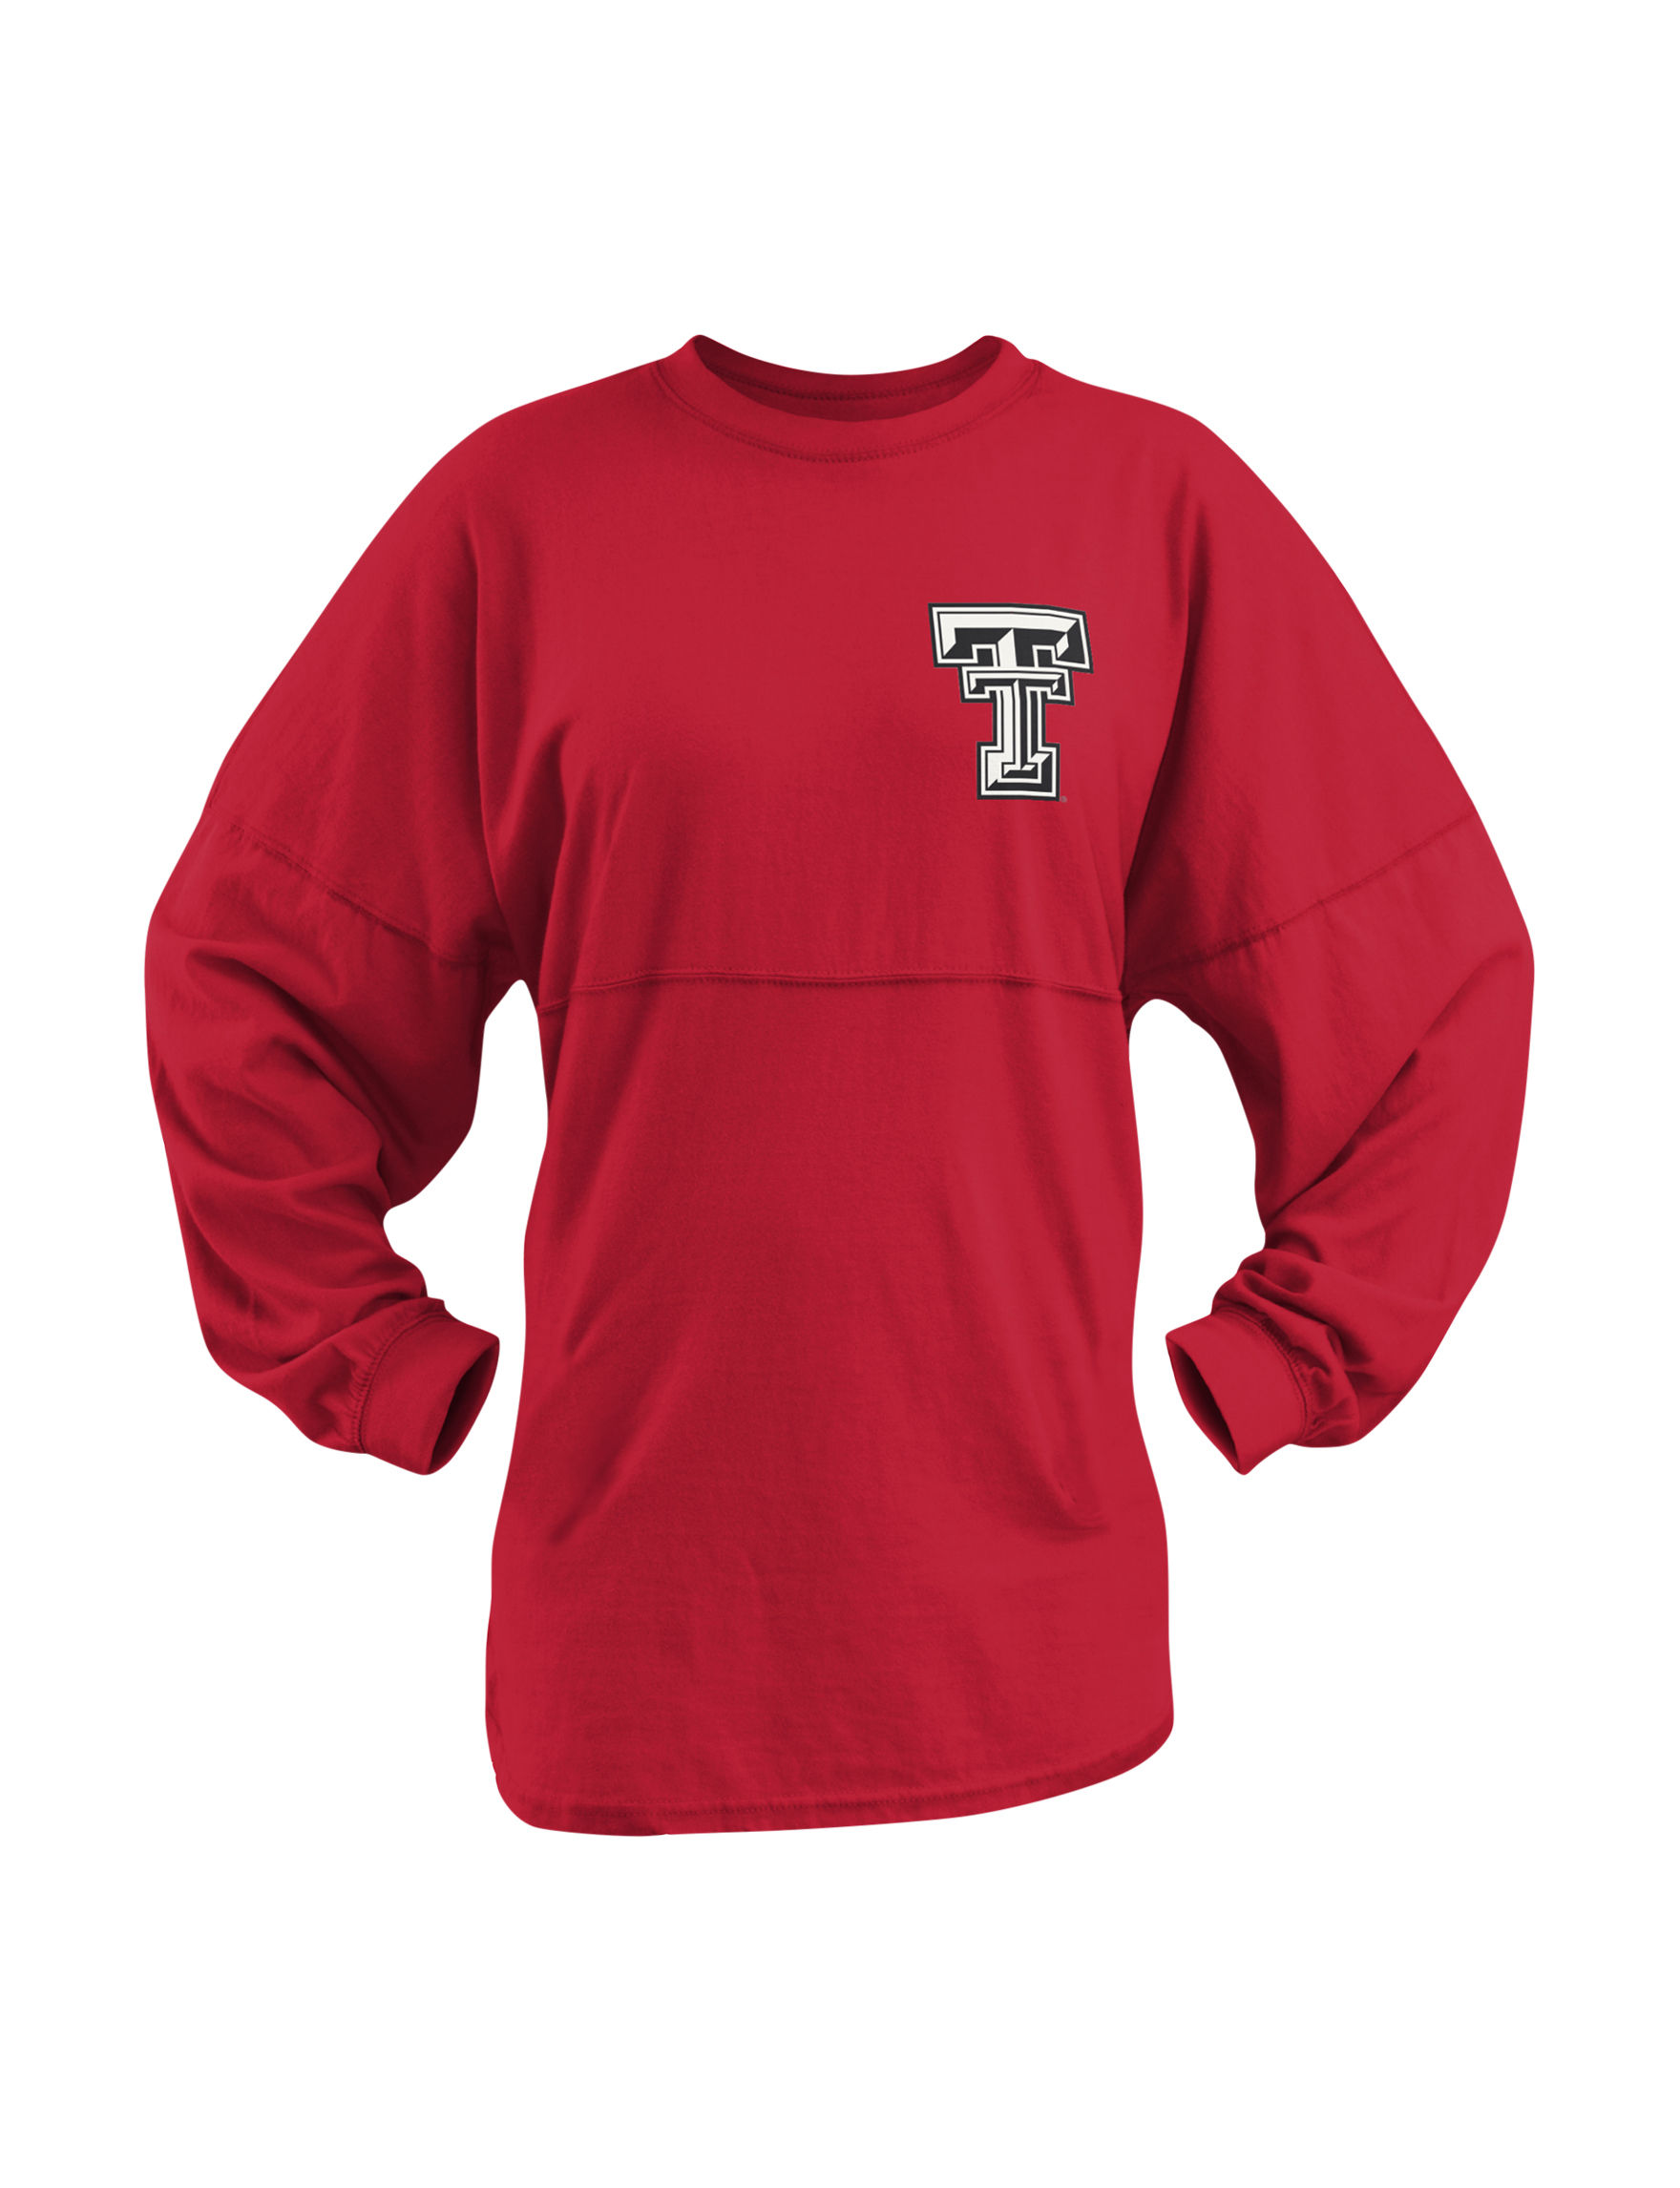 NCAA Red Pull-overs Shirts & Blouses Tees & Tanks